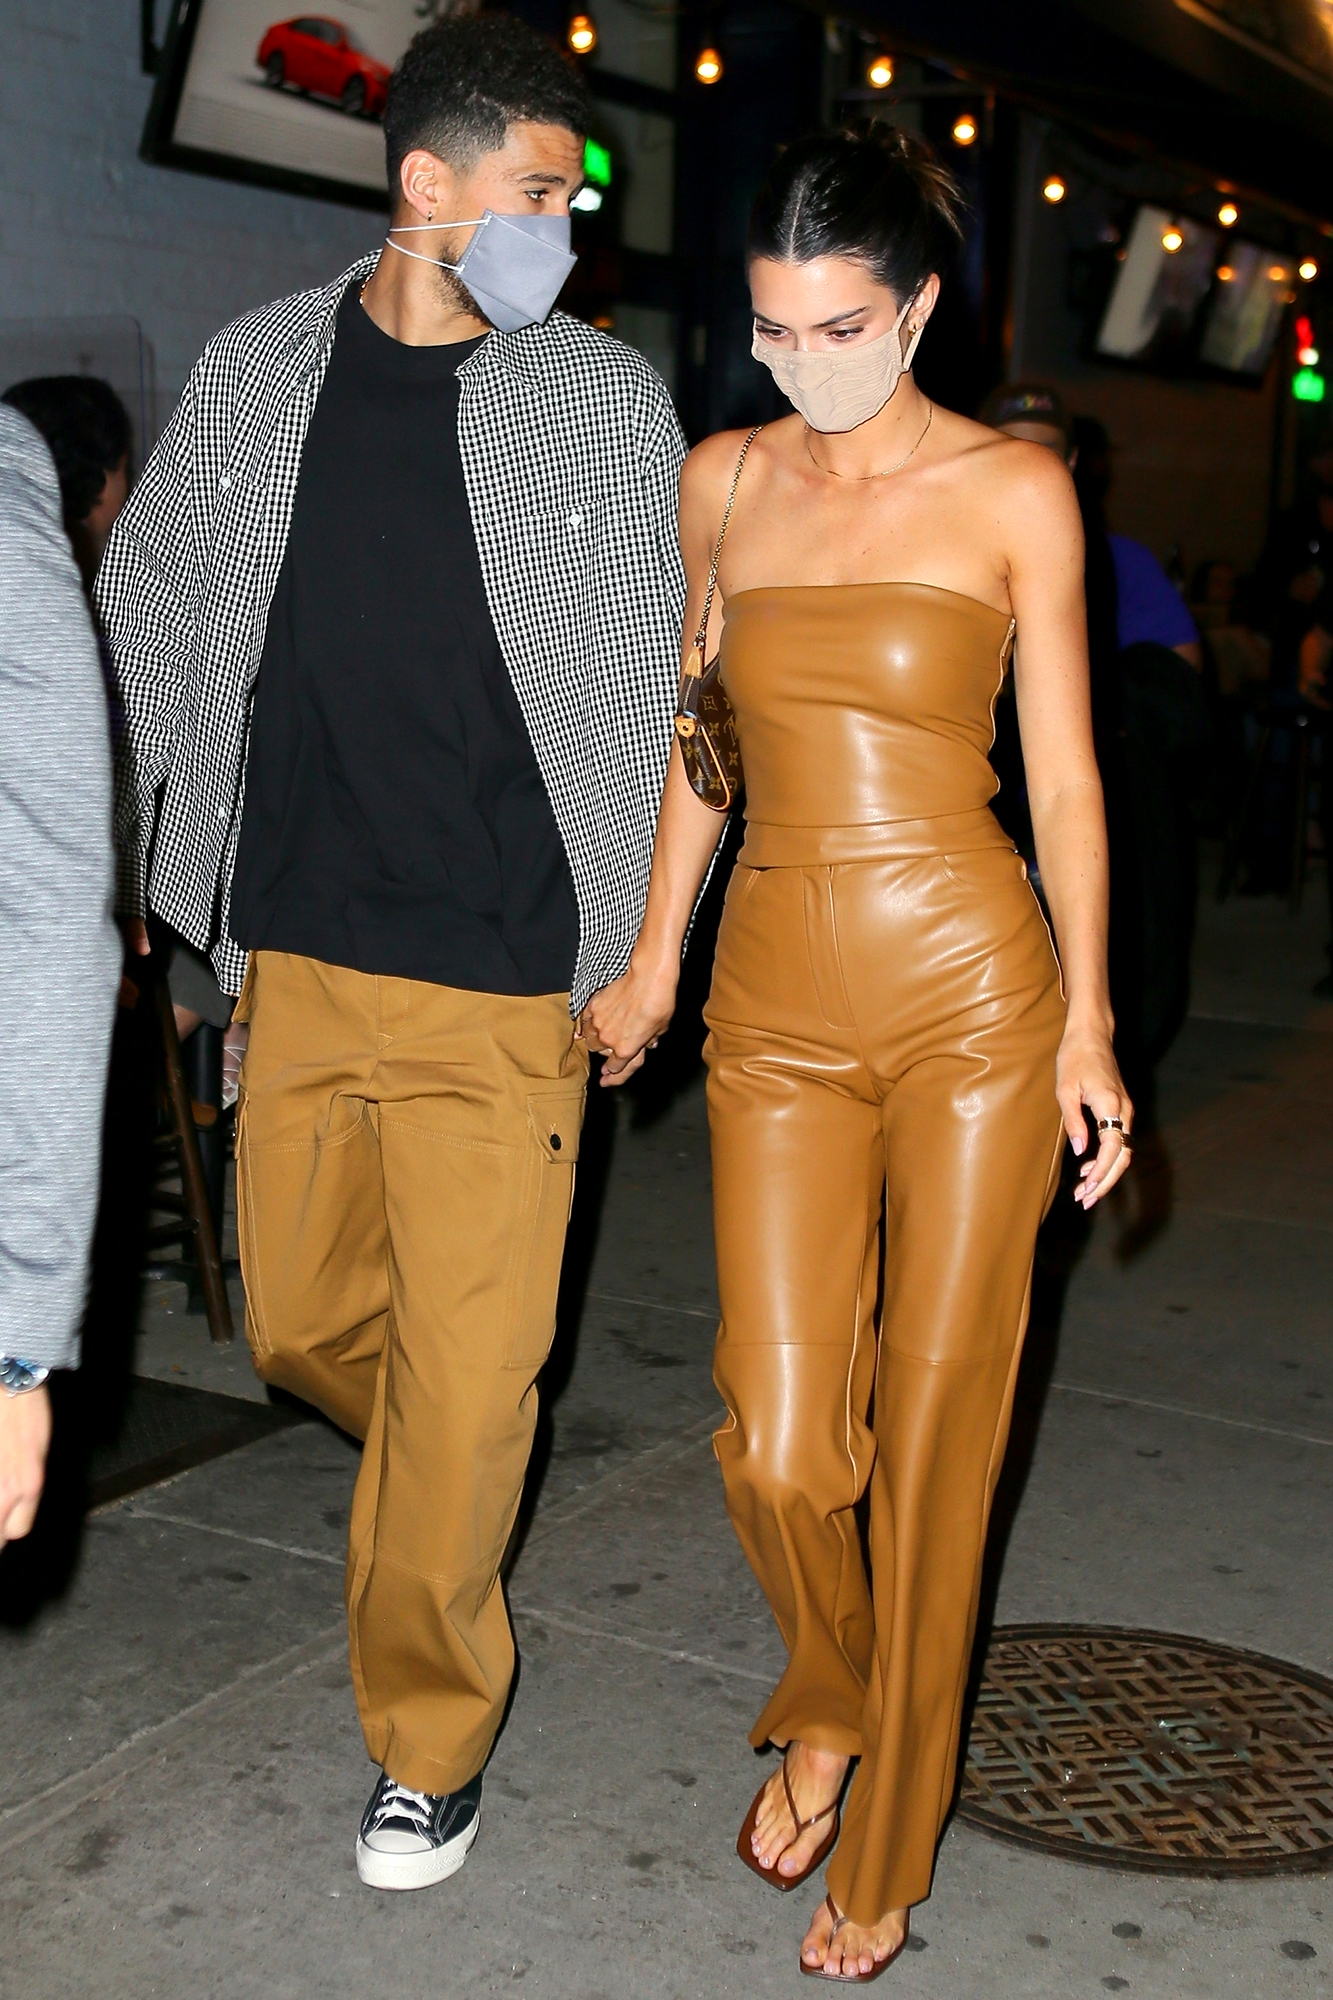 Kendall Jenner, Devin Booker Hold Hands on Date Night in NYC   PEOPLE.com